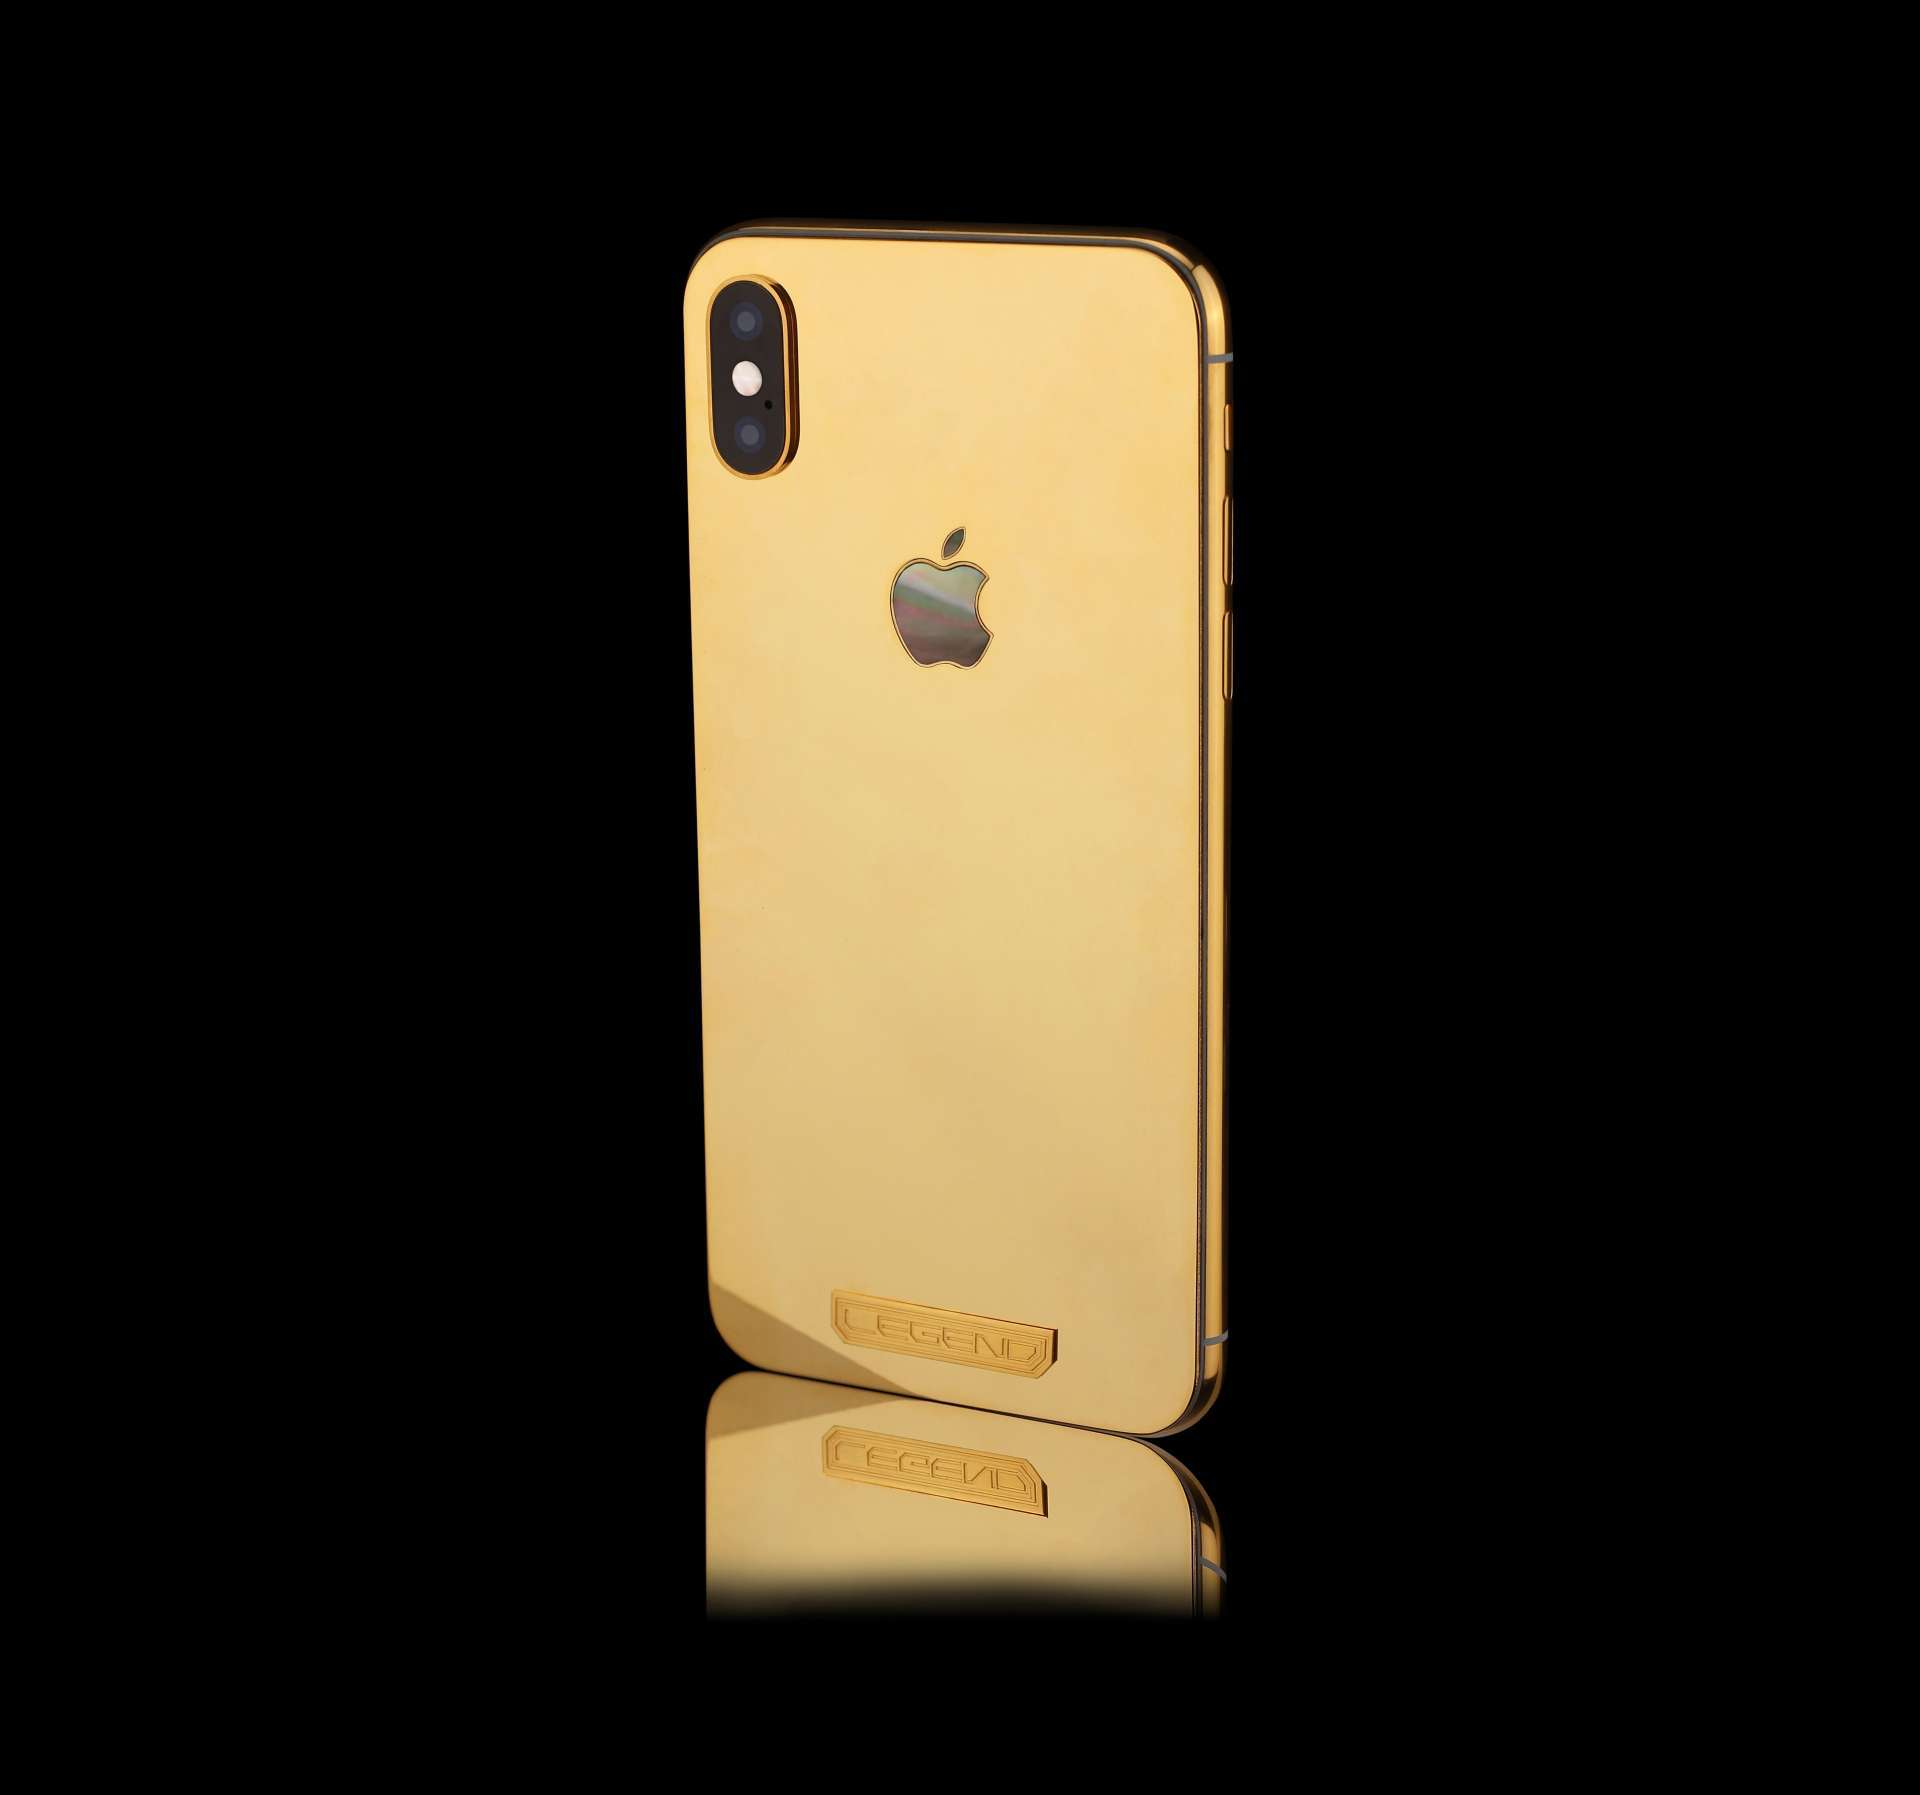 Custom iPhone X 256Gb 24k Gold limited edition | Bespoke with solid gold MOP